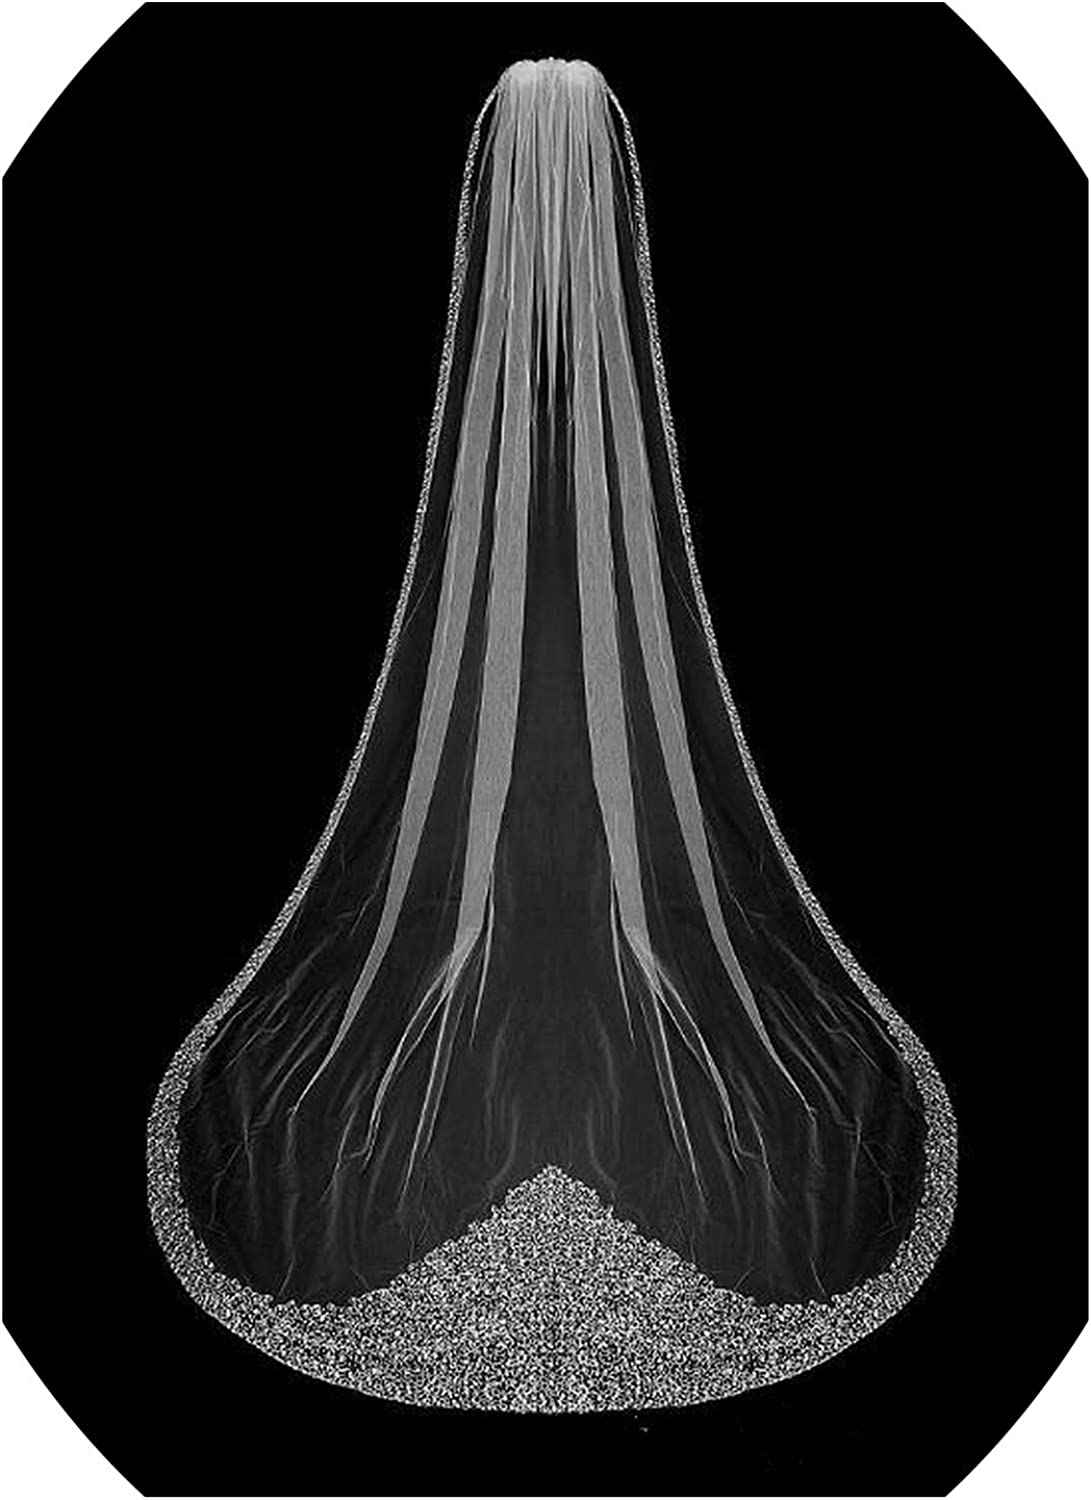 Luxury Crystal Bridal Veils One Tier Cathedral Long Bling Bling Beaded Wedding Veil Ivory Or White Veil With Comb,Ivory,300Cm